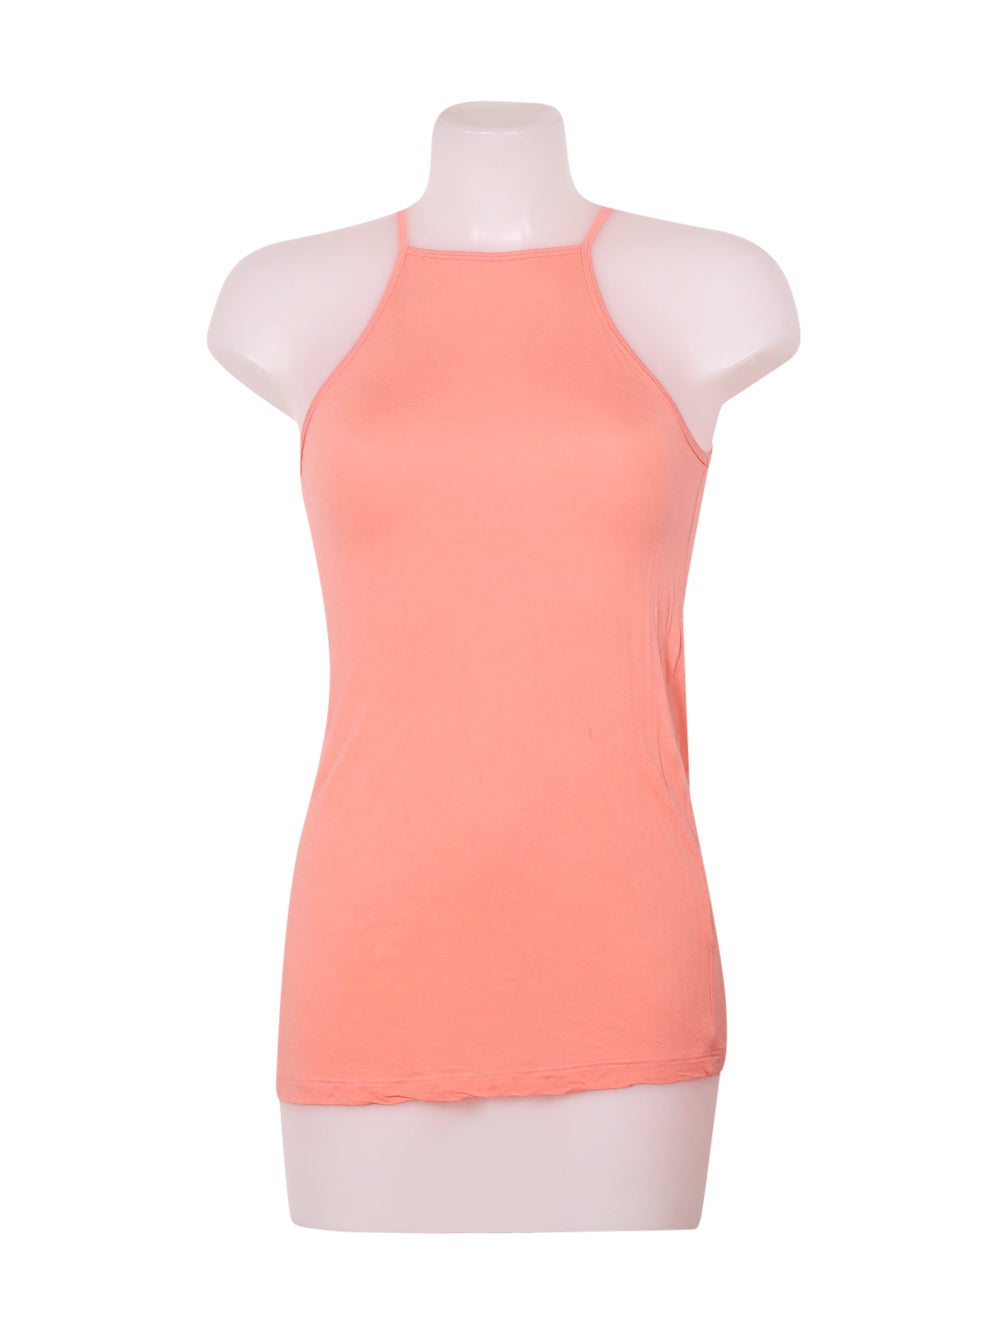 Front photo of Preloved Asos Pink Woman's sleeveless top - size 6/XS